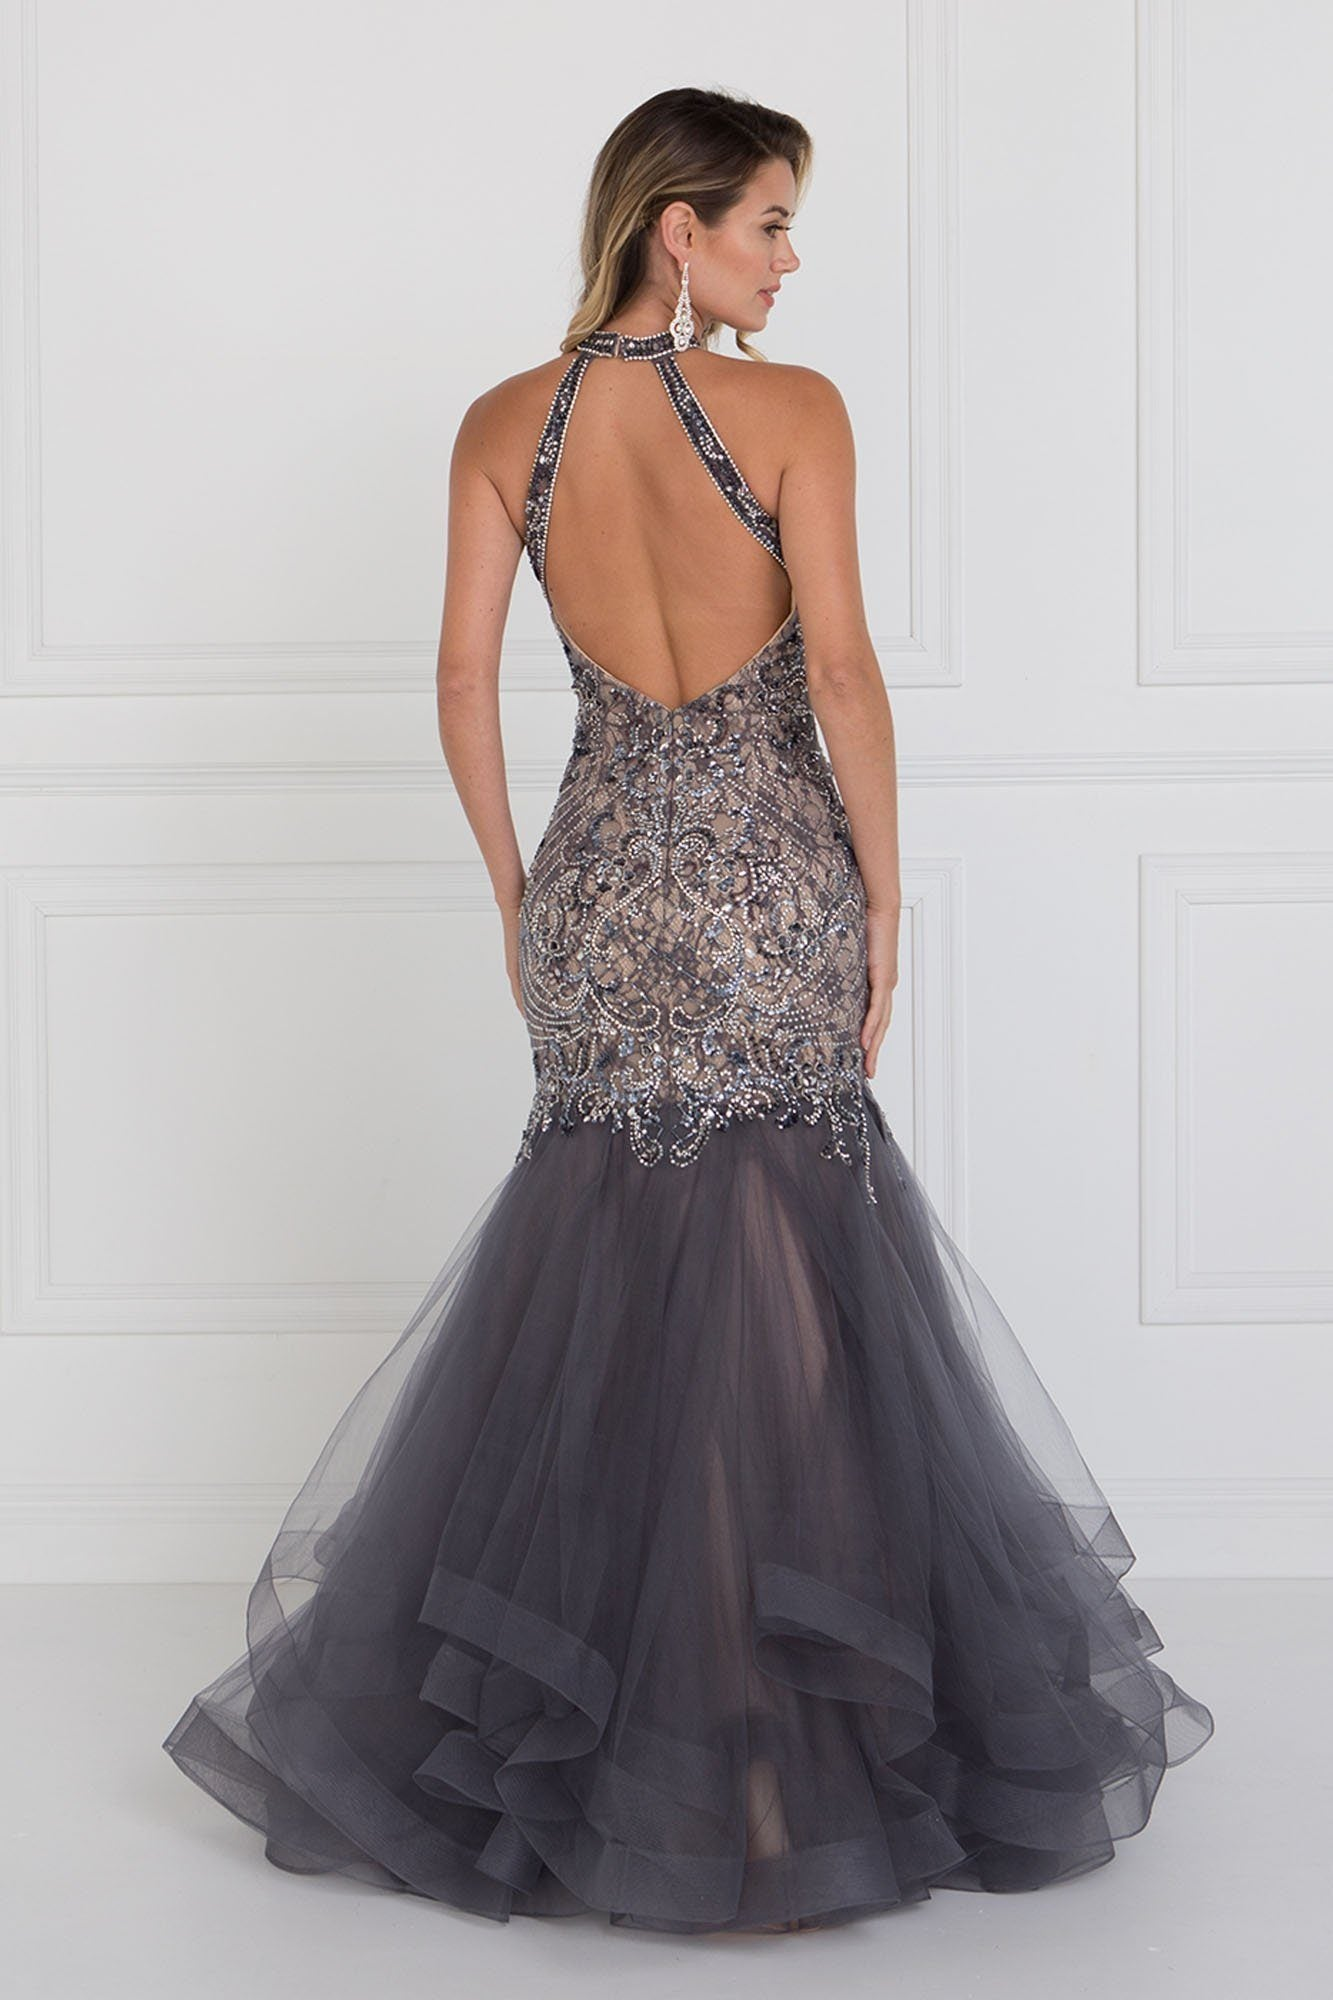 Extravagant Backless mermaid prom dress with ruffles – Simply Fab Dress